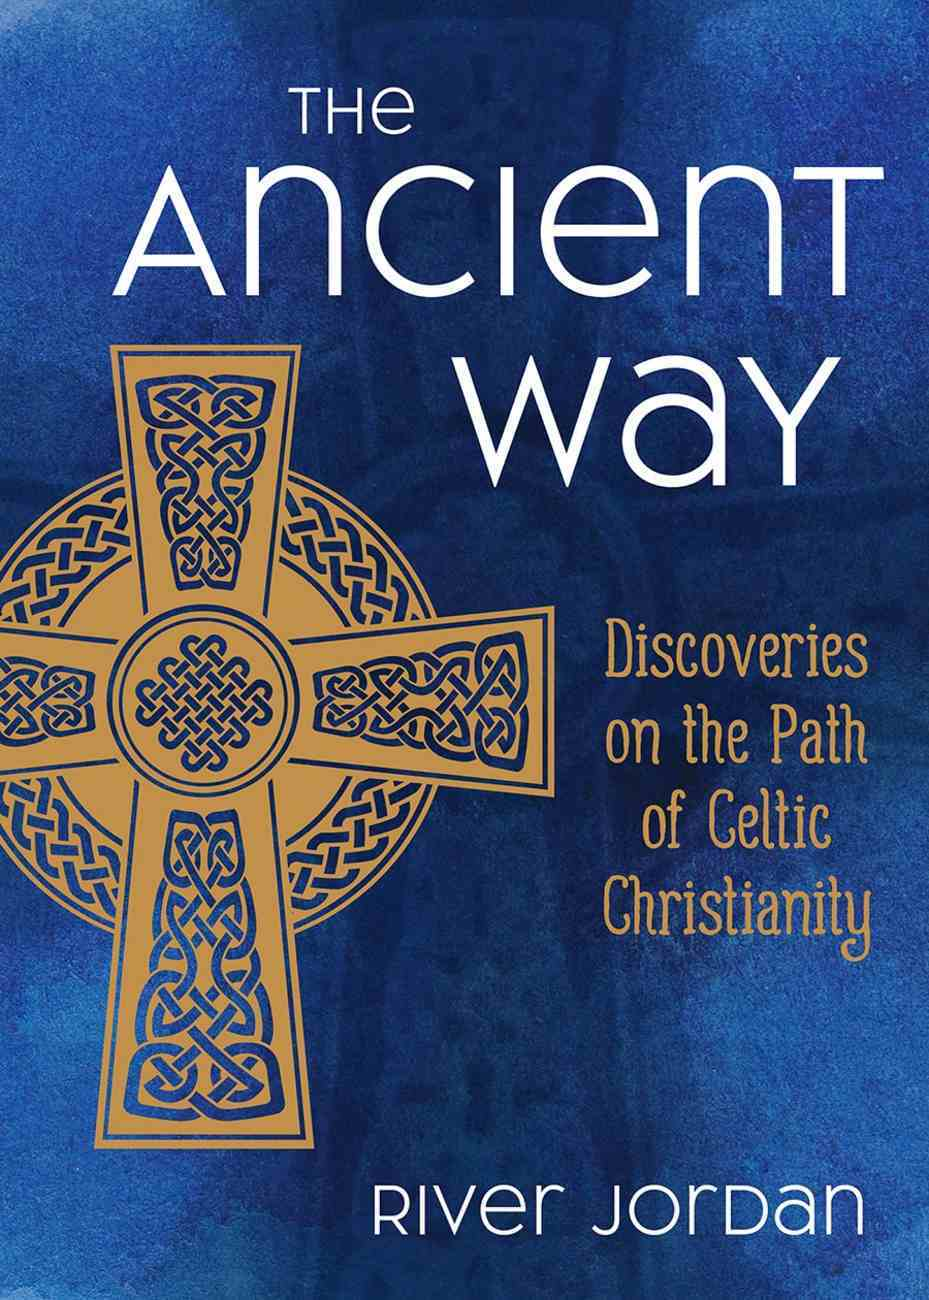 The Ancient Way: Discoveries on the Path of Celtic Christianity Hardback